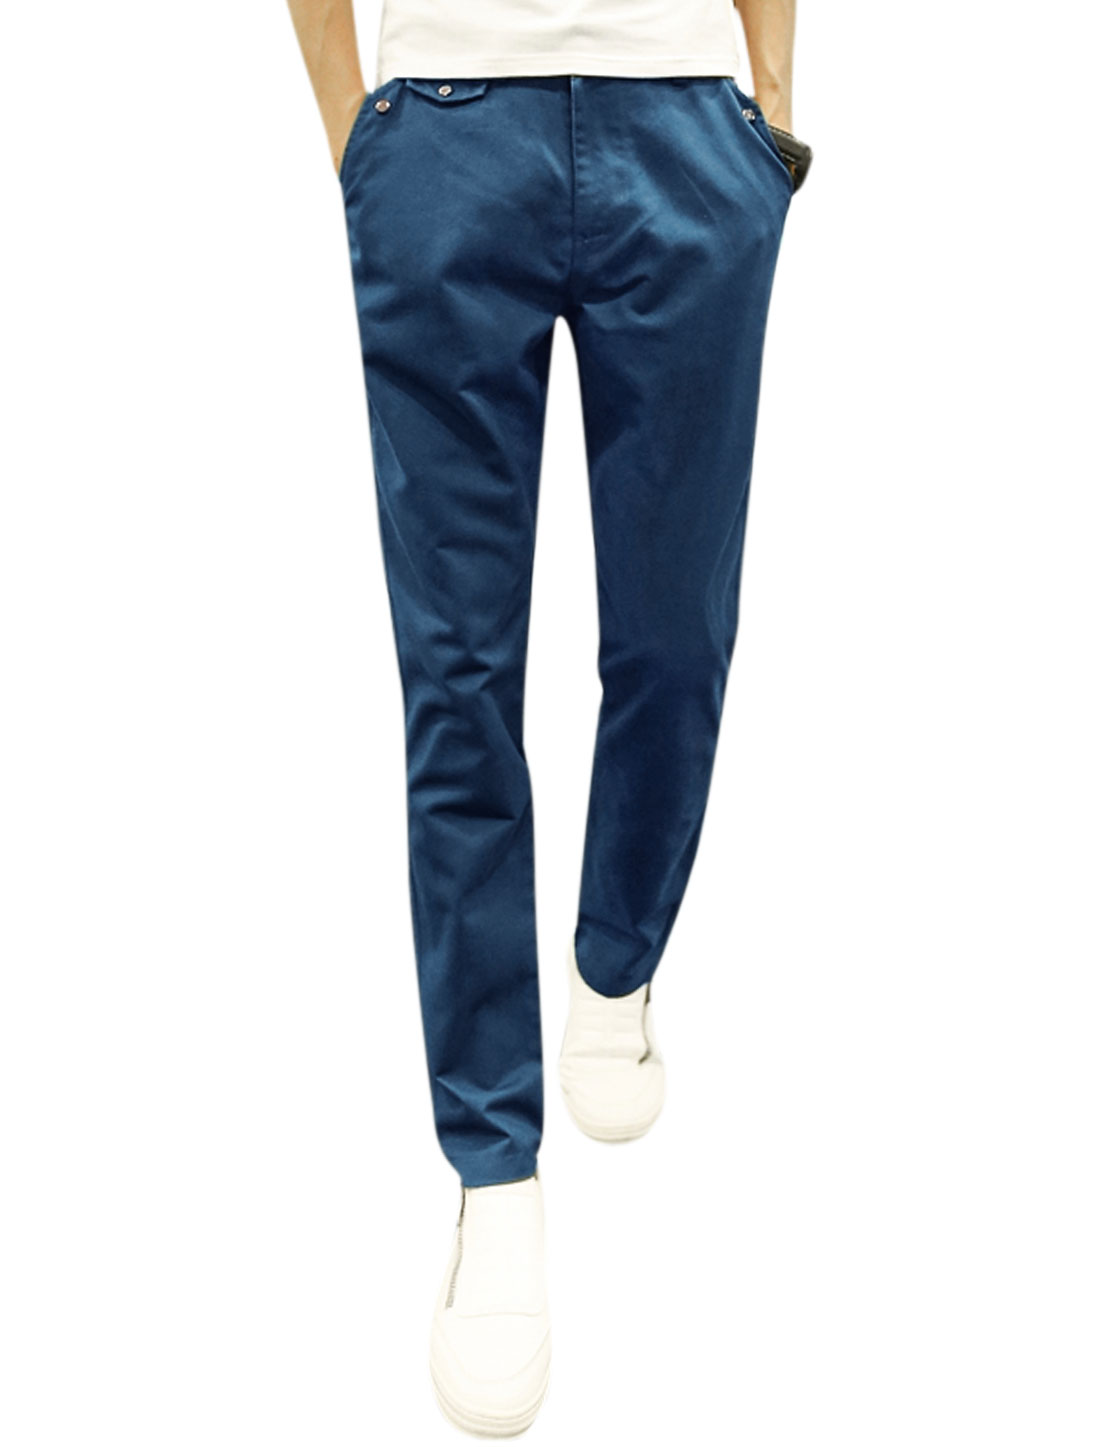 Men Mid Rise Button Closed Zip Fly Four Pockets Tapered Casual Pants Blue W30